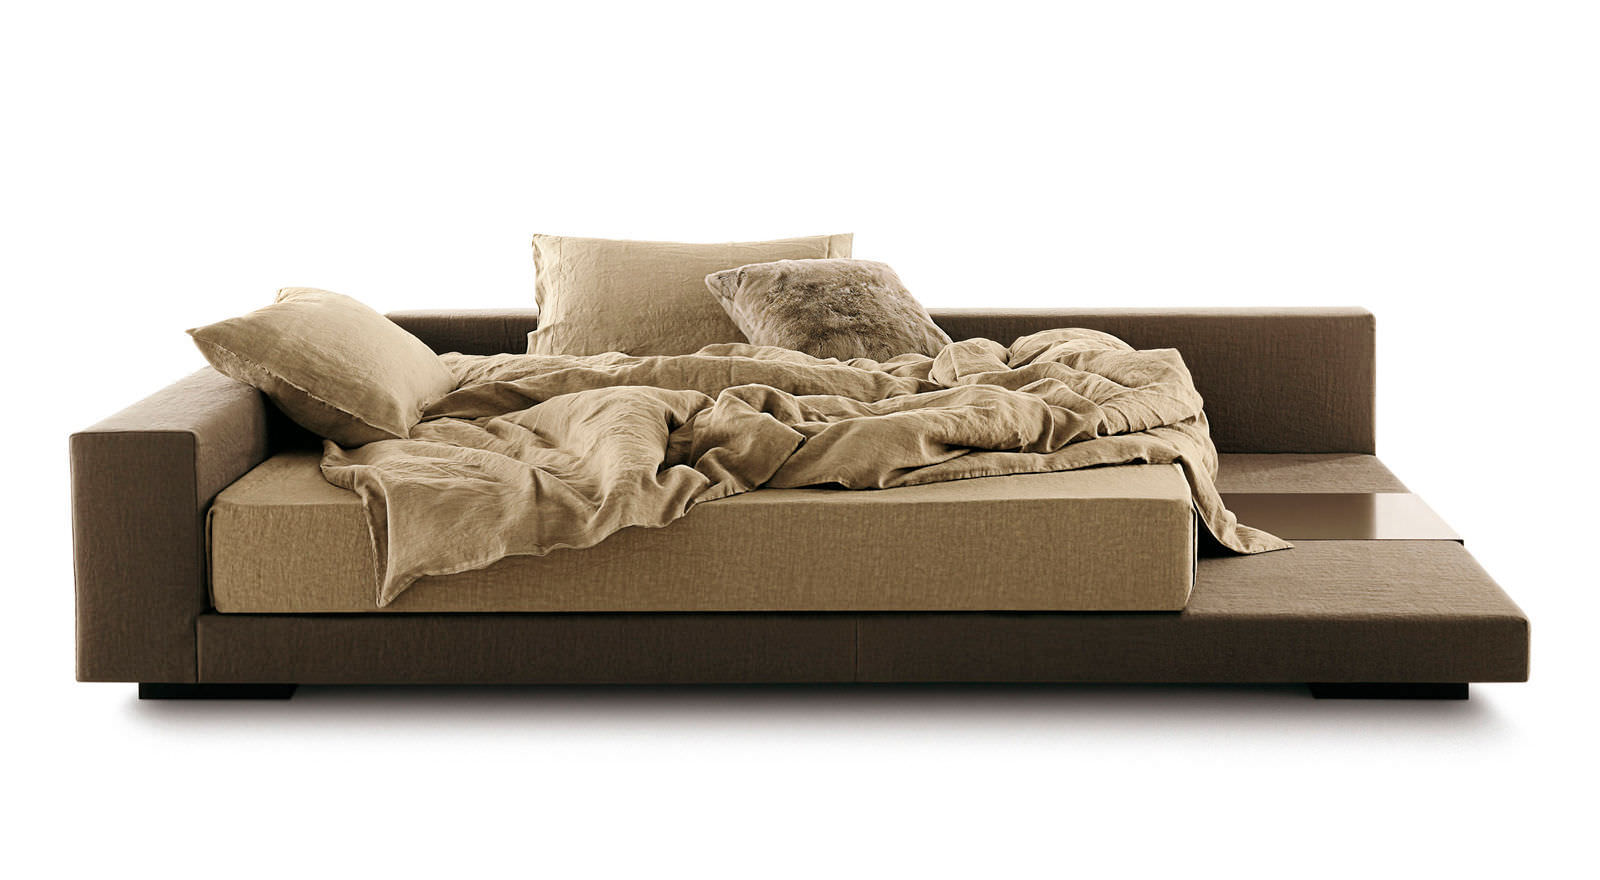 Double Bed / Single / Contemporary / With Upholstered Headboard   YOU AND  ME ISOLA By Ennio Arosio   Ivano Redaelli